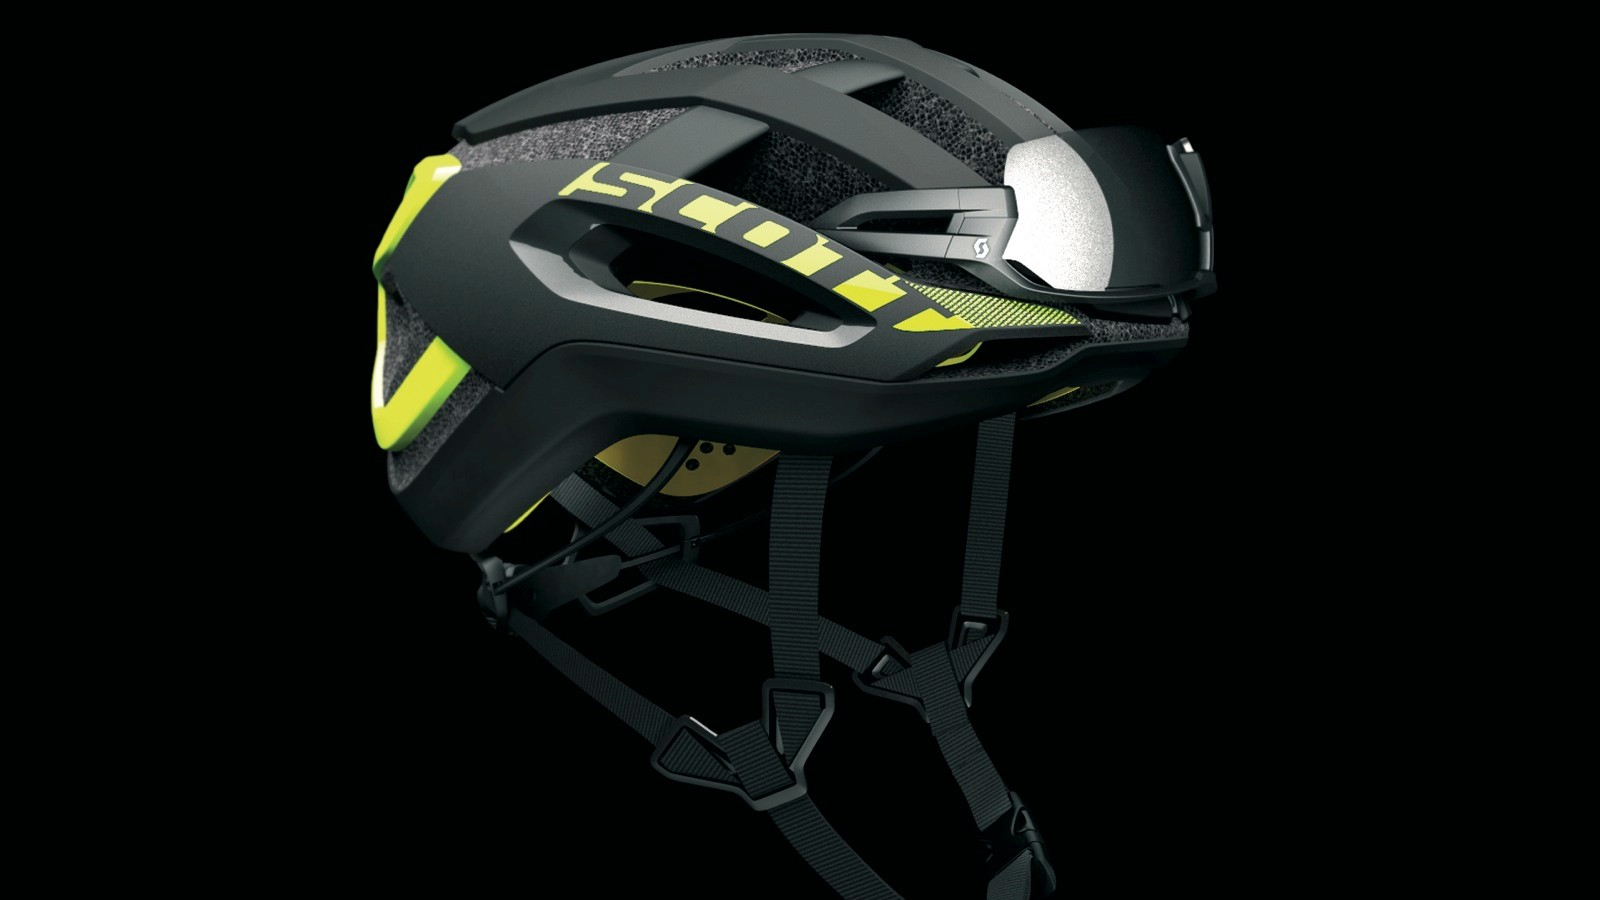 Scott claims its new Centric Plus is cooler than wearing no helmet at all (by 2%) when riding at 40kph